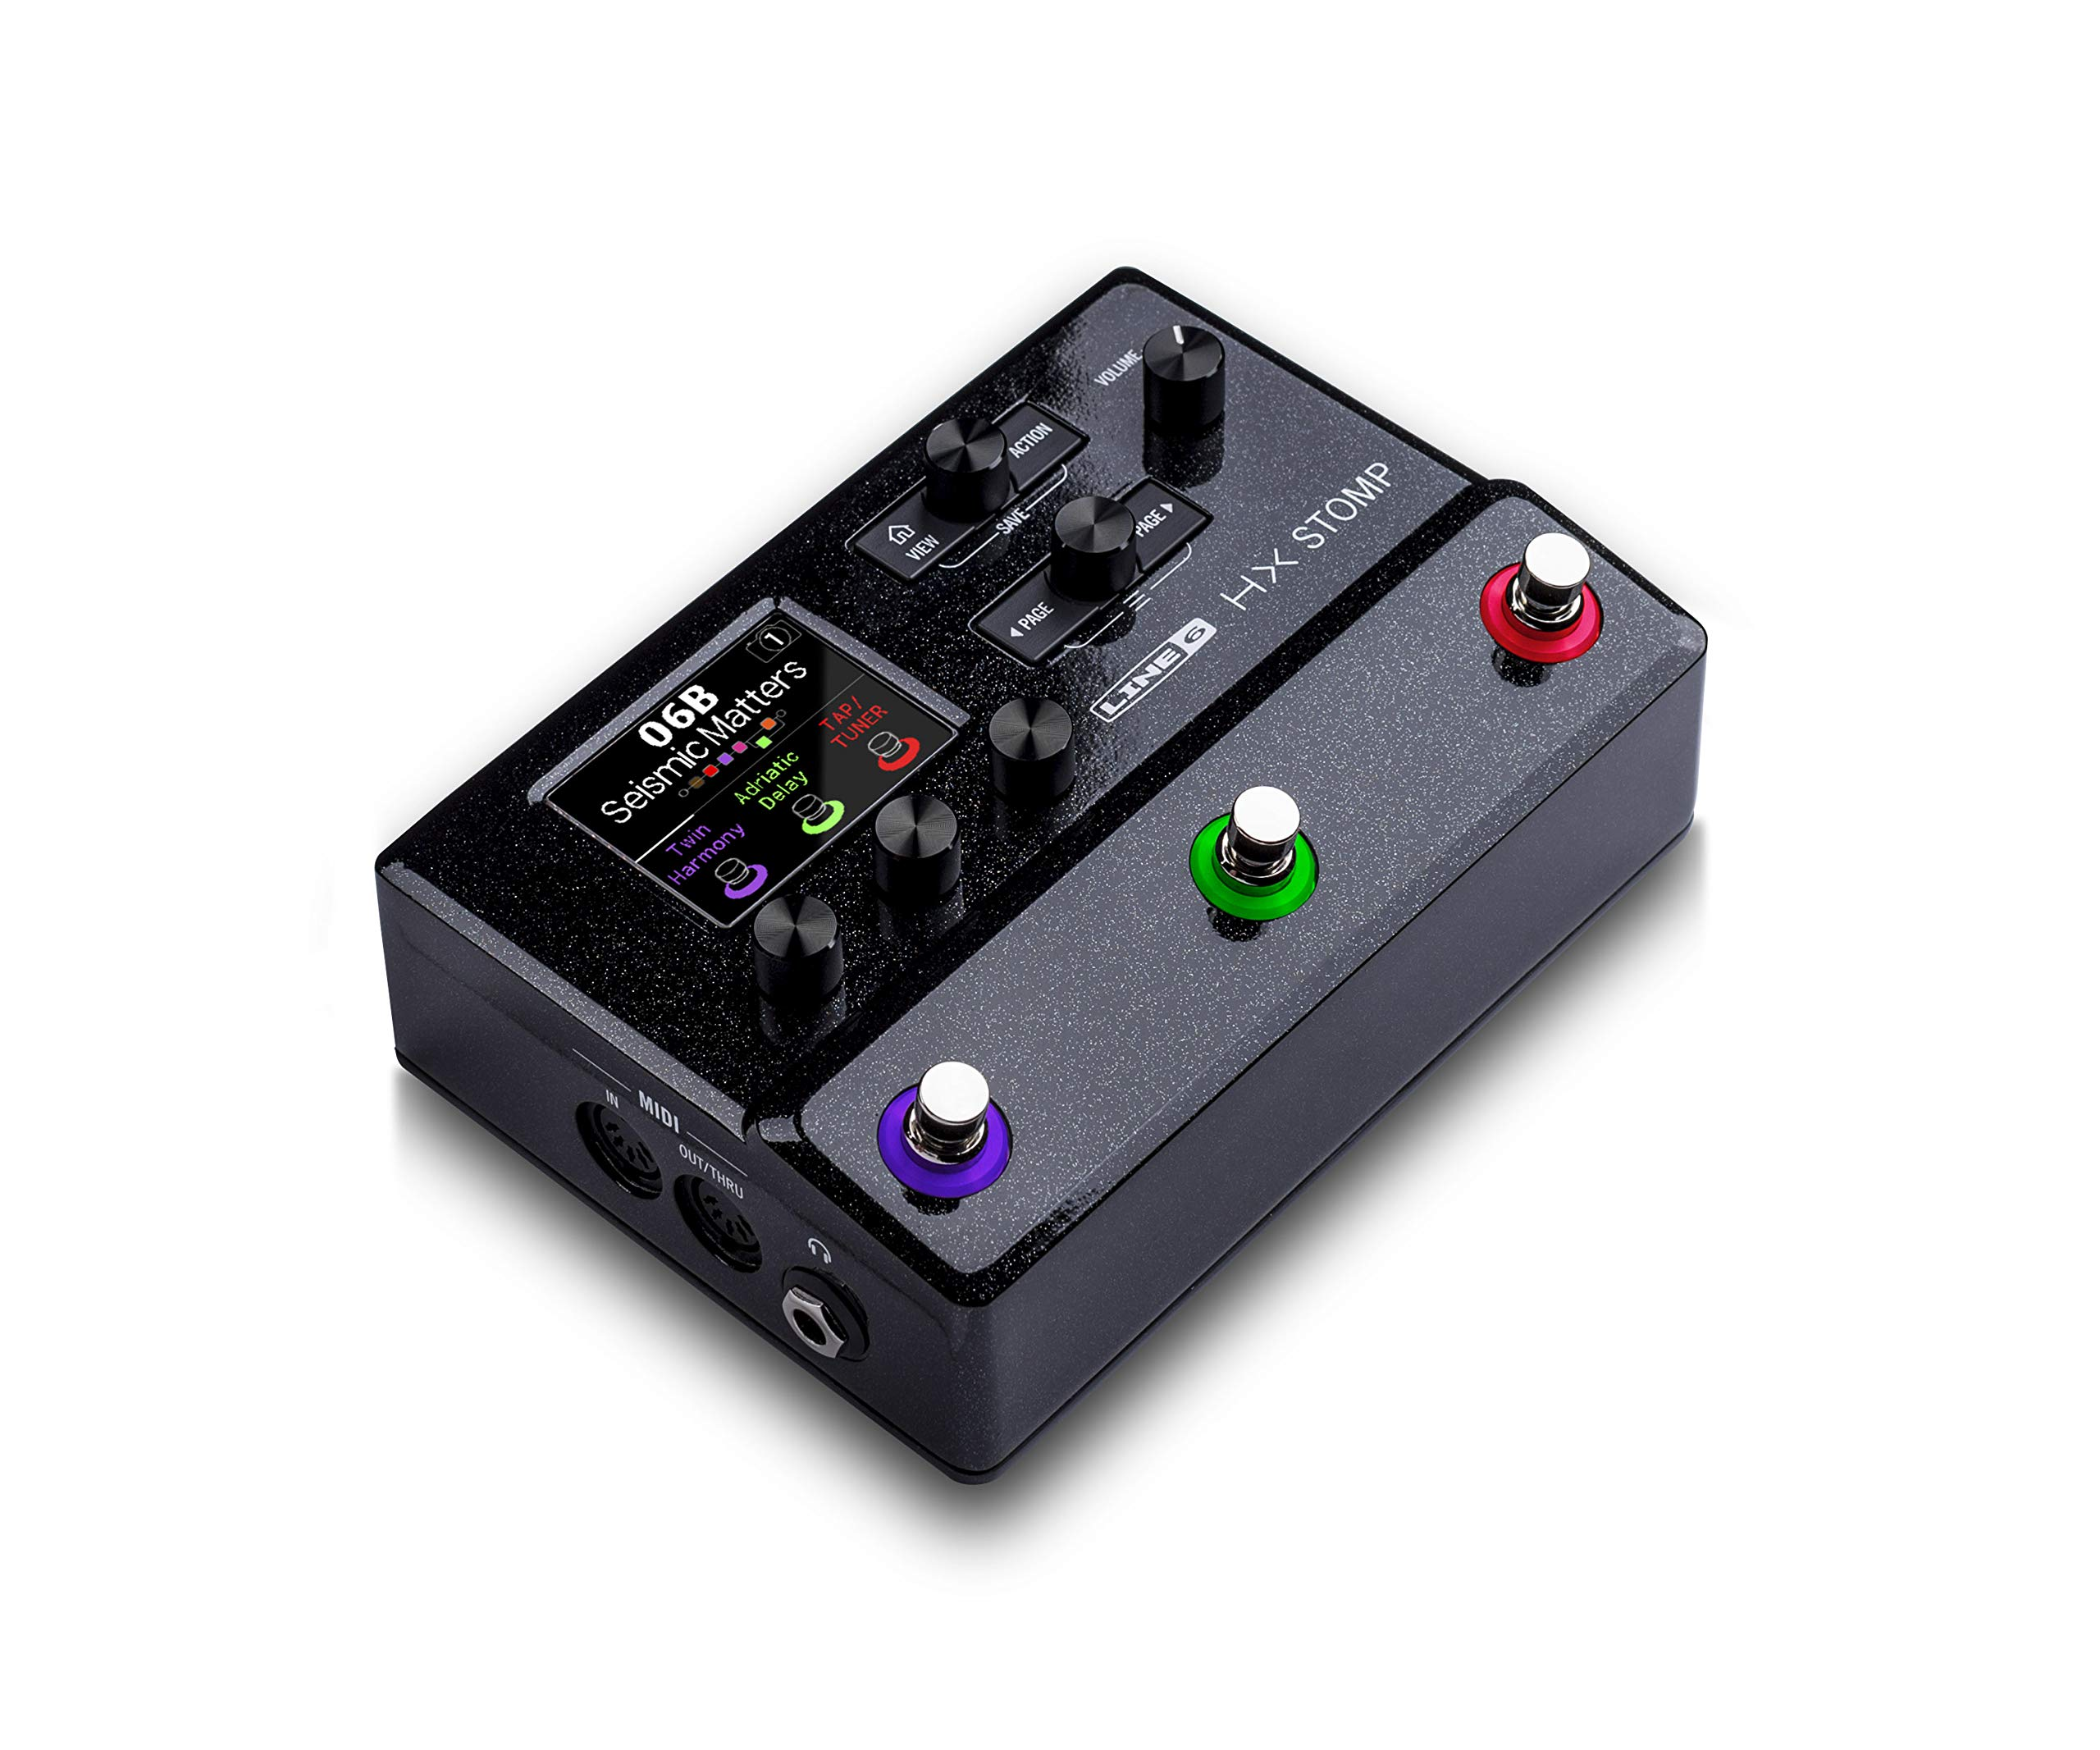 Line 6 Electric Guitar Multi Effect, Black (HX Stomp) by Line 6 (Image #3)